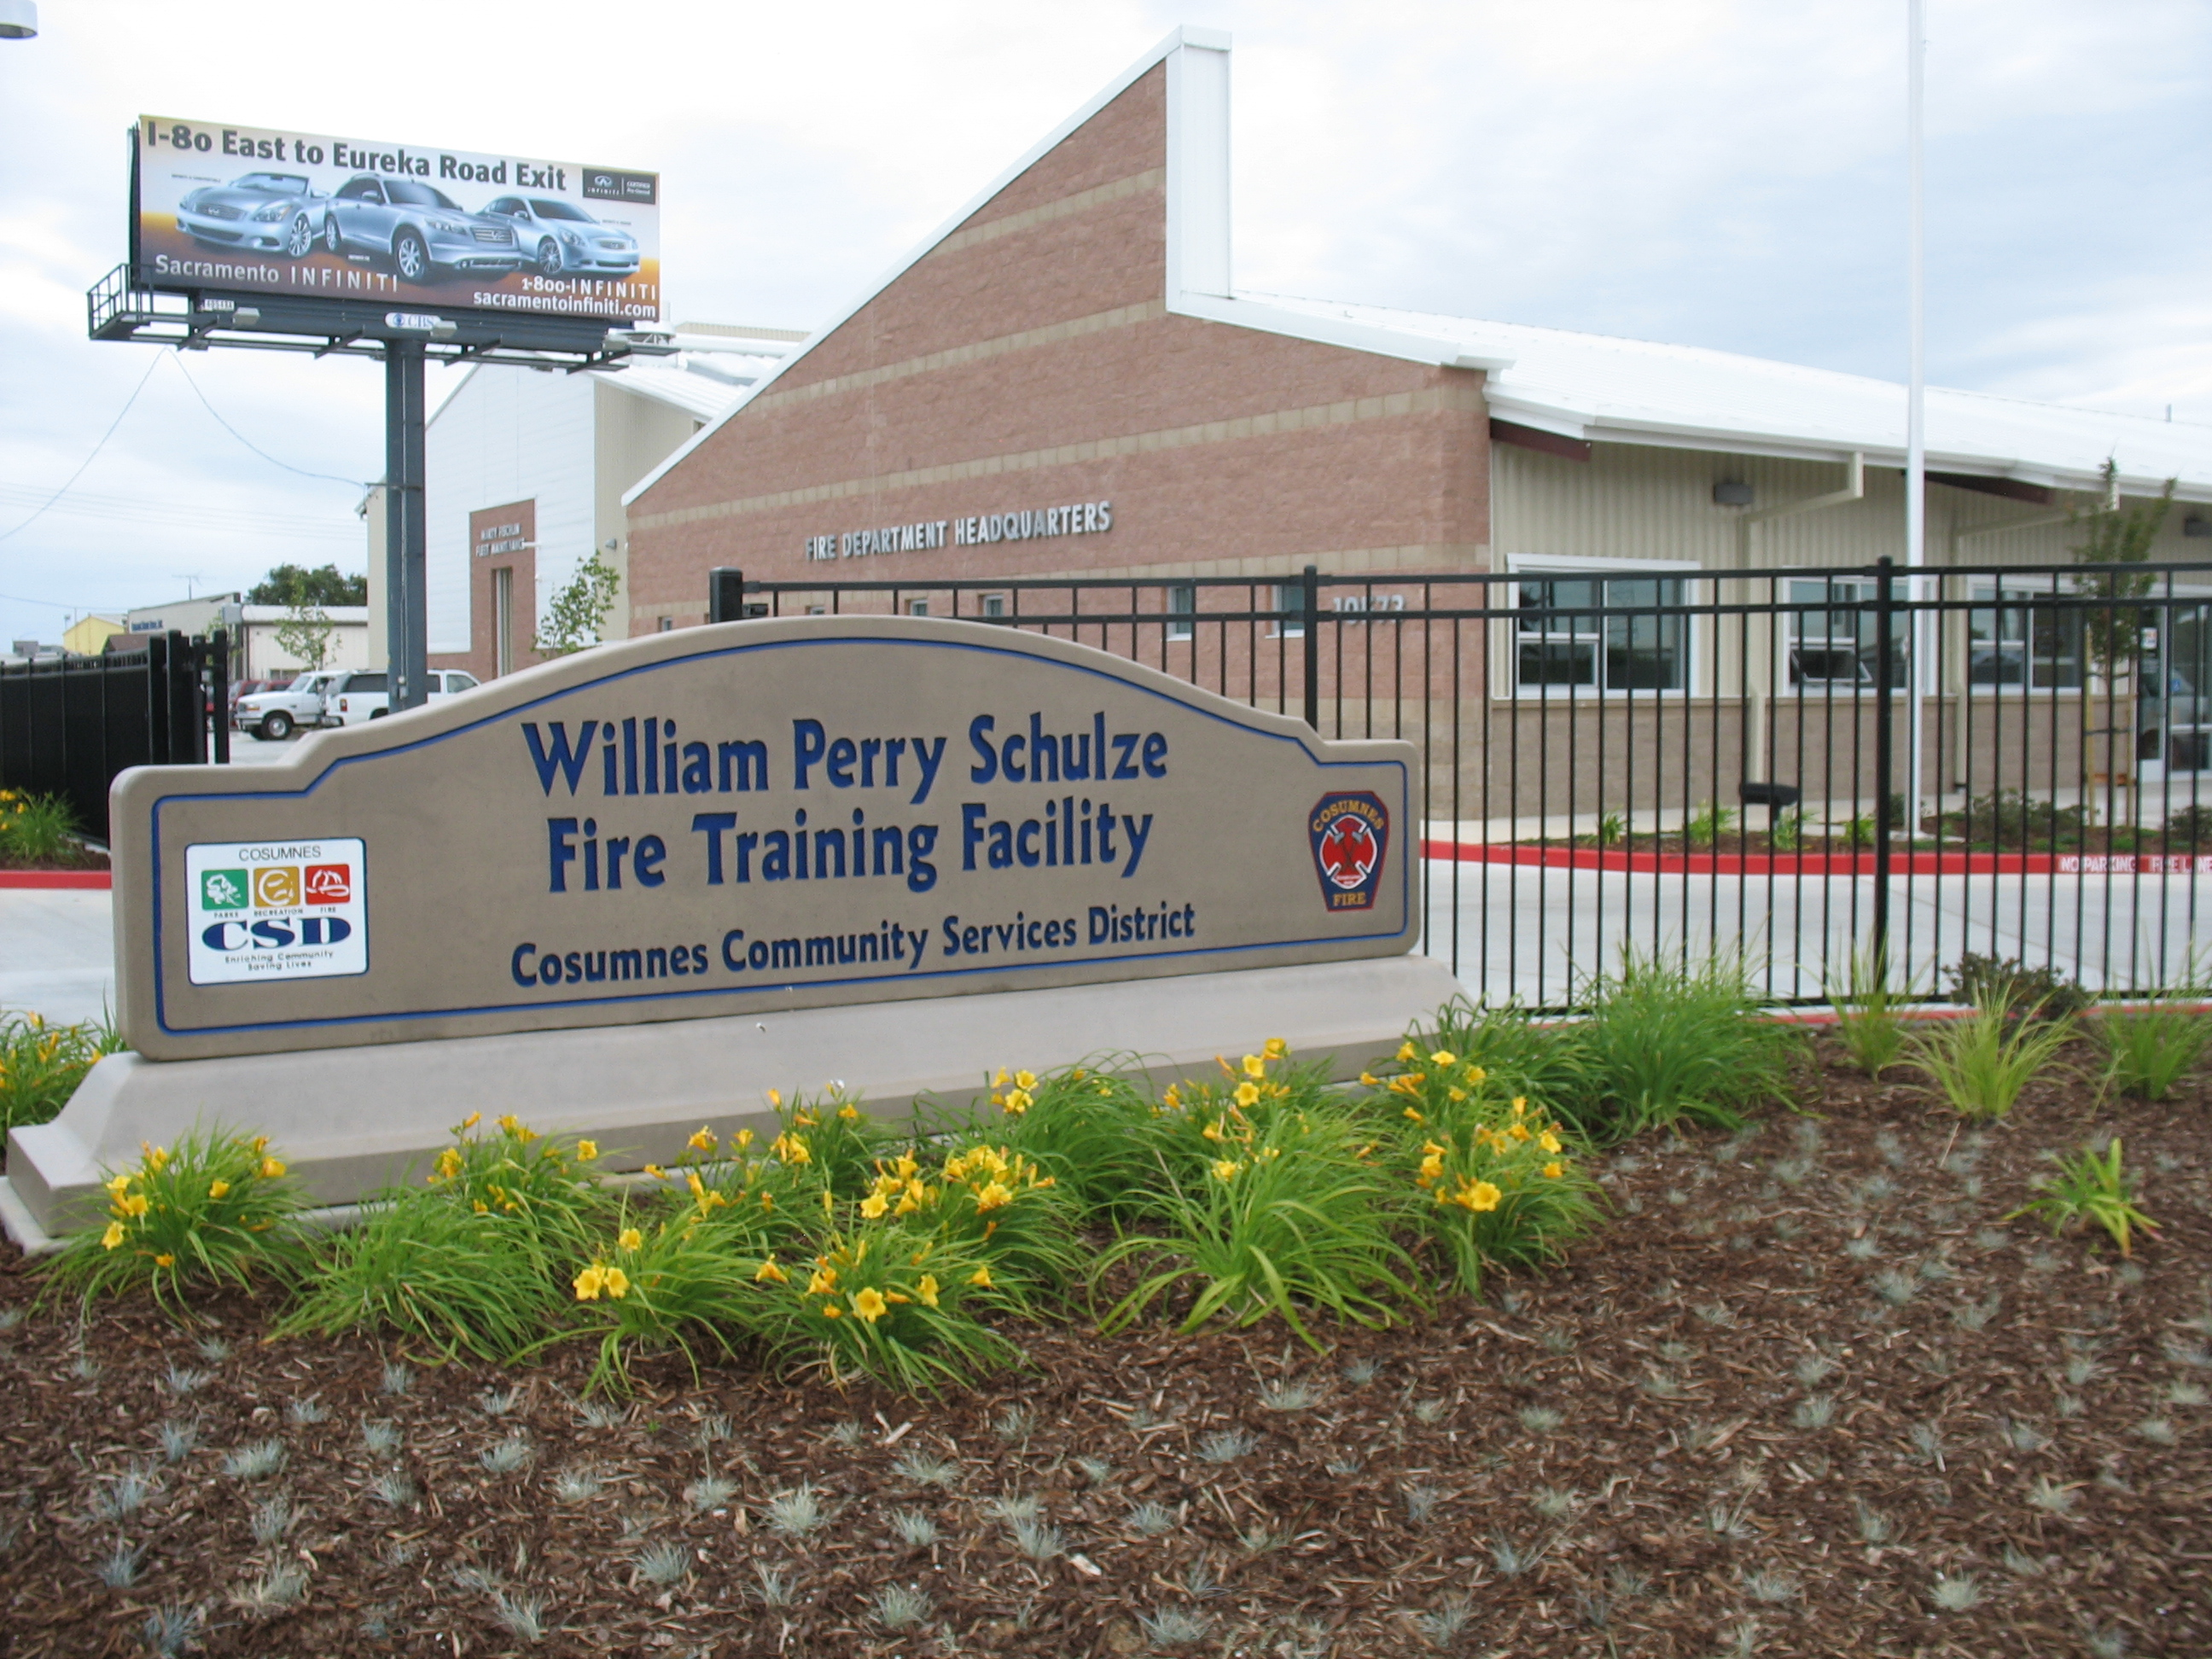 The sign at the William Perry Schulze Fire Training Facility.